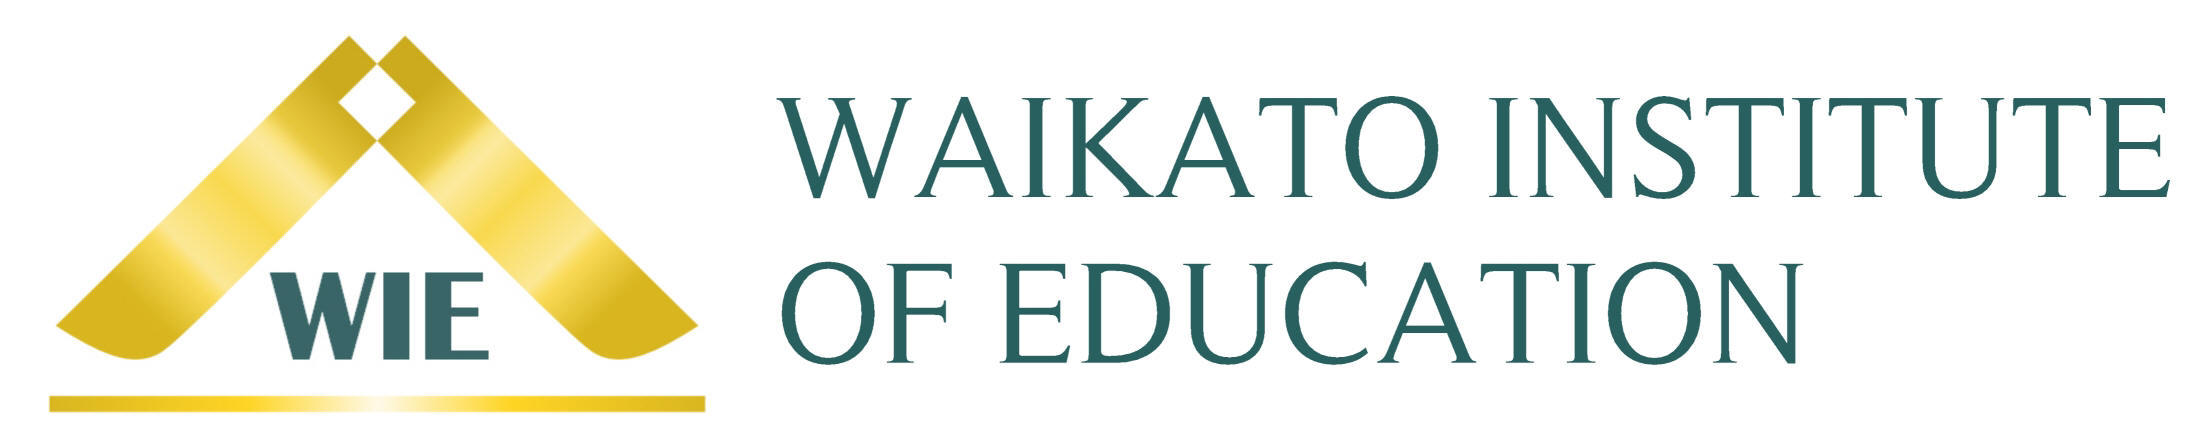 Waikato Institute of Education banner